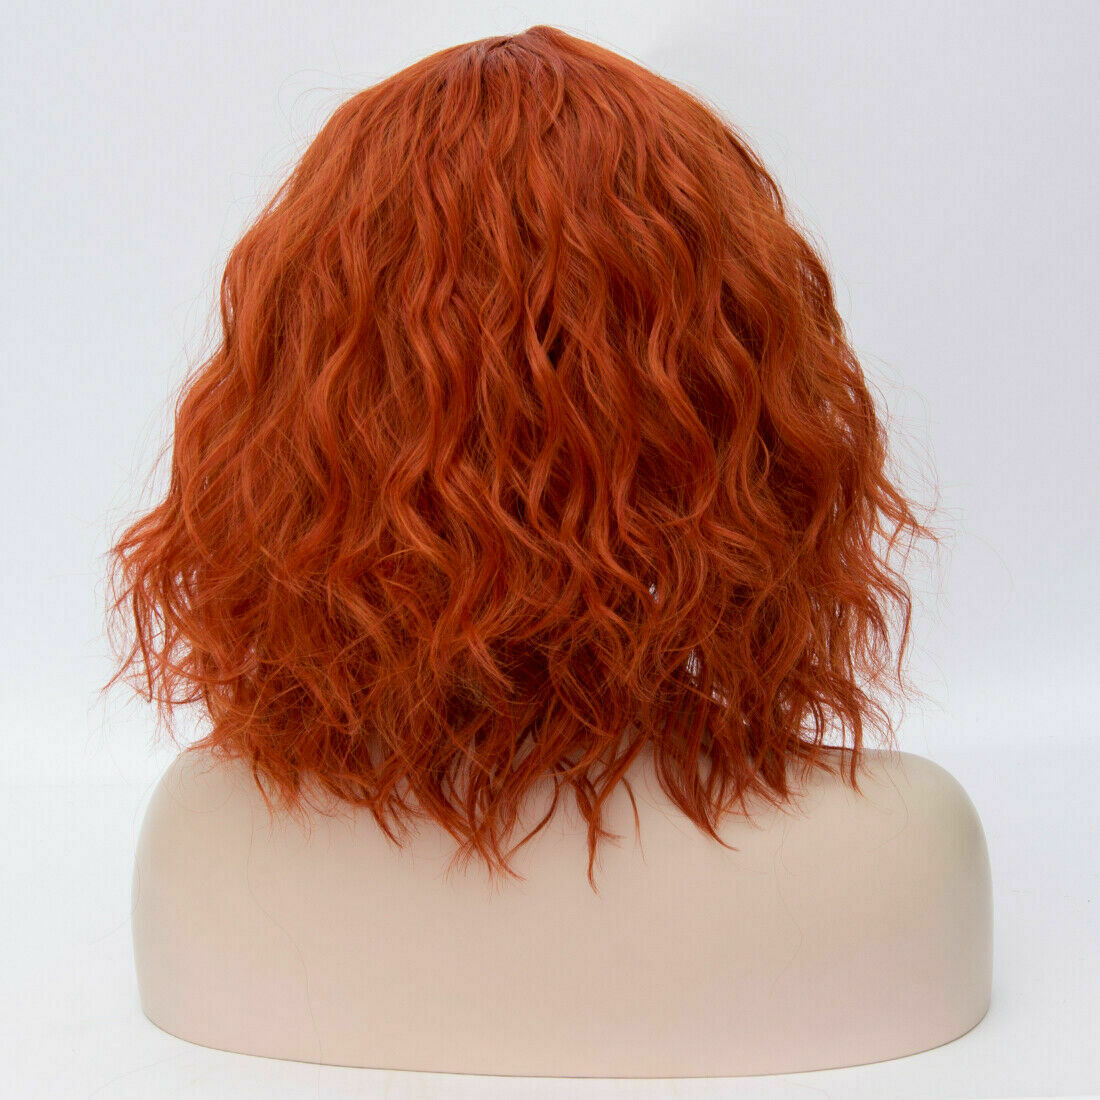 Lolita-Women-039-s-Short-Curly-Anime-Synthetic-Hair-Heat-Resistant-Cosplay-Party-Wig miniature 79